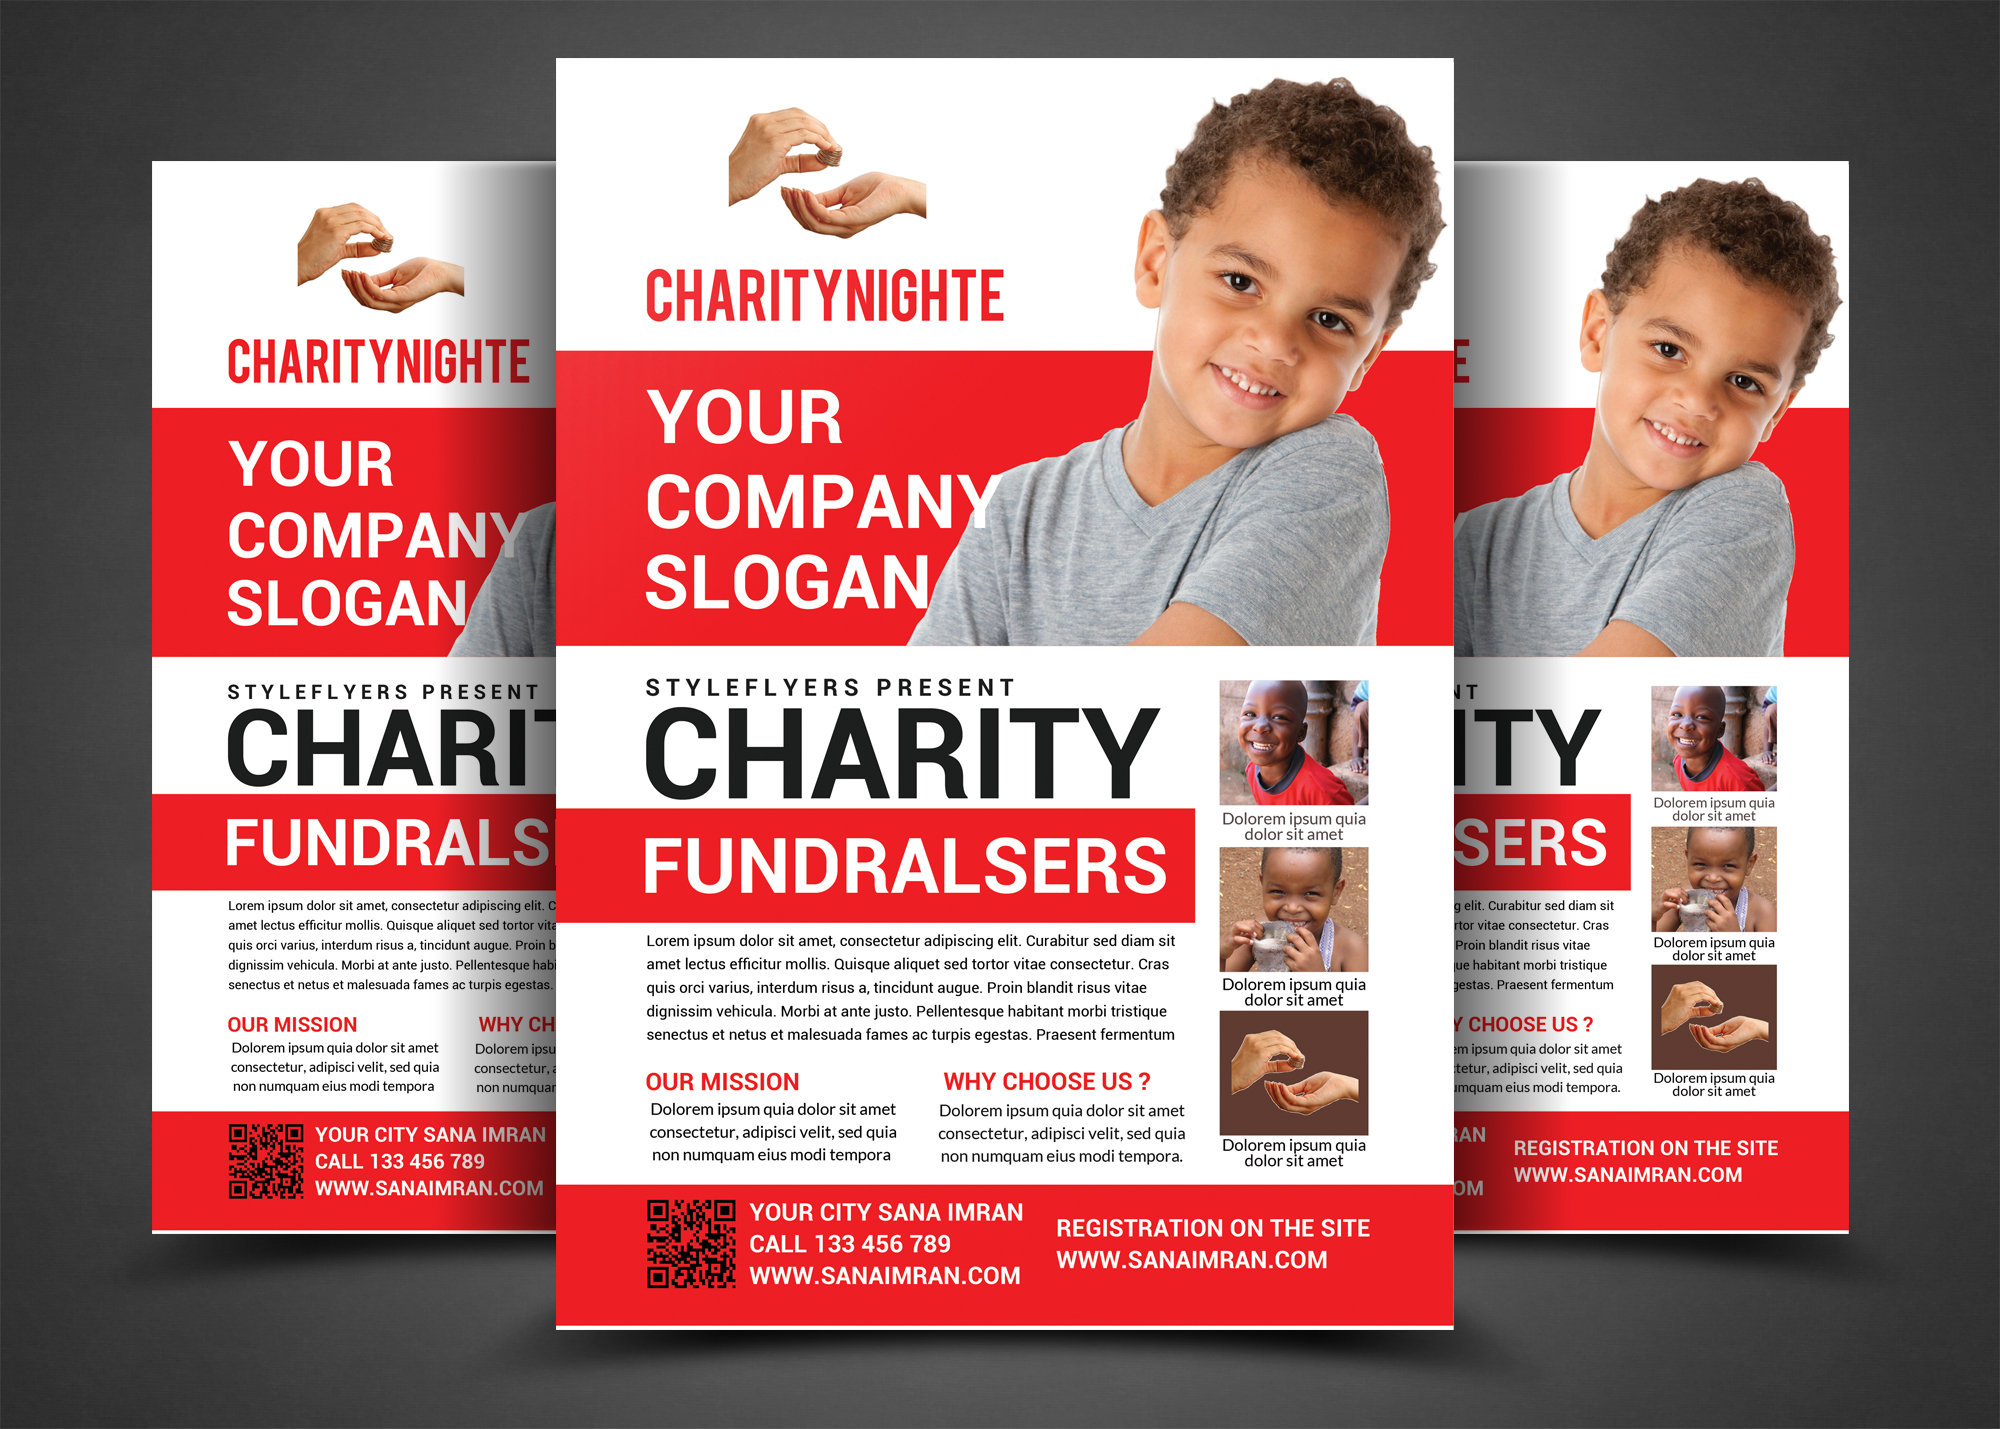 Charity Night Fundraisers Flyer example image 2